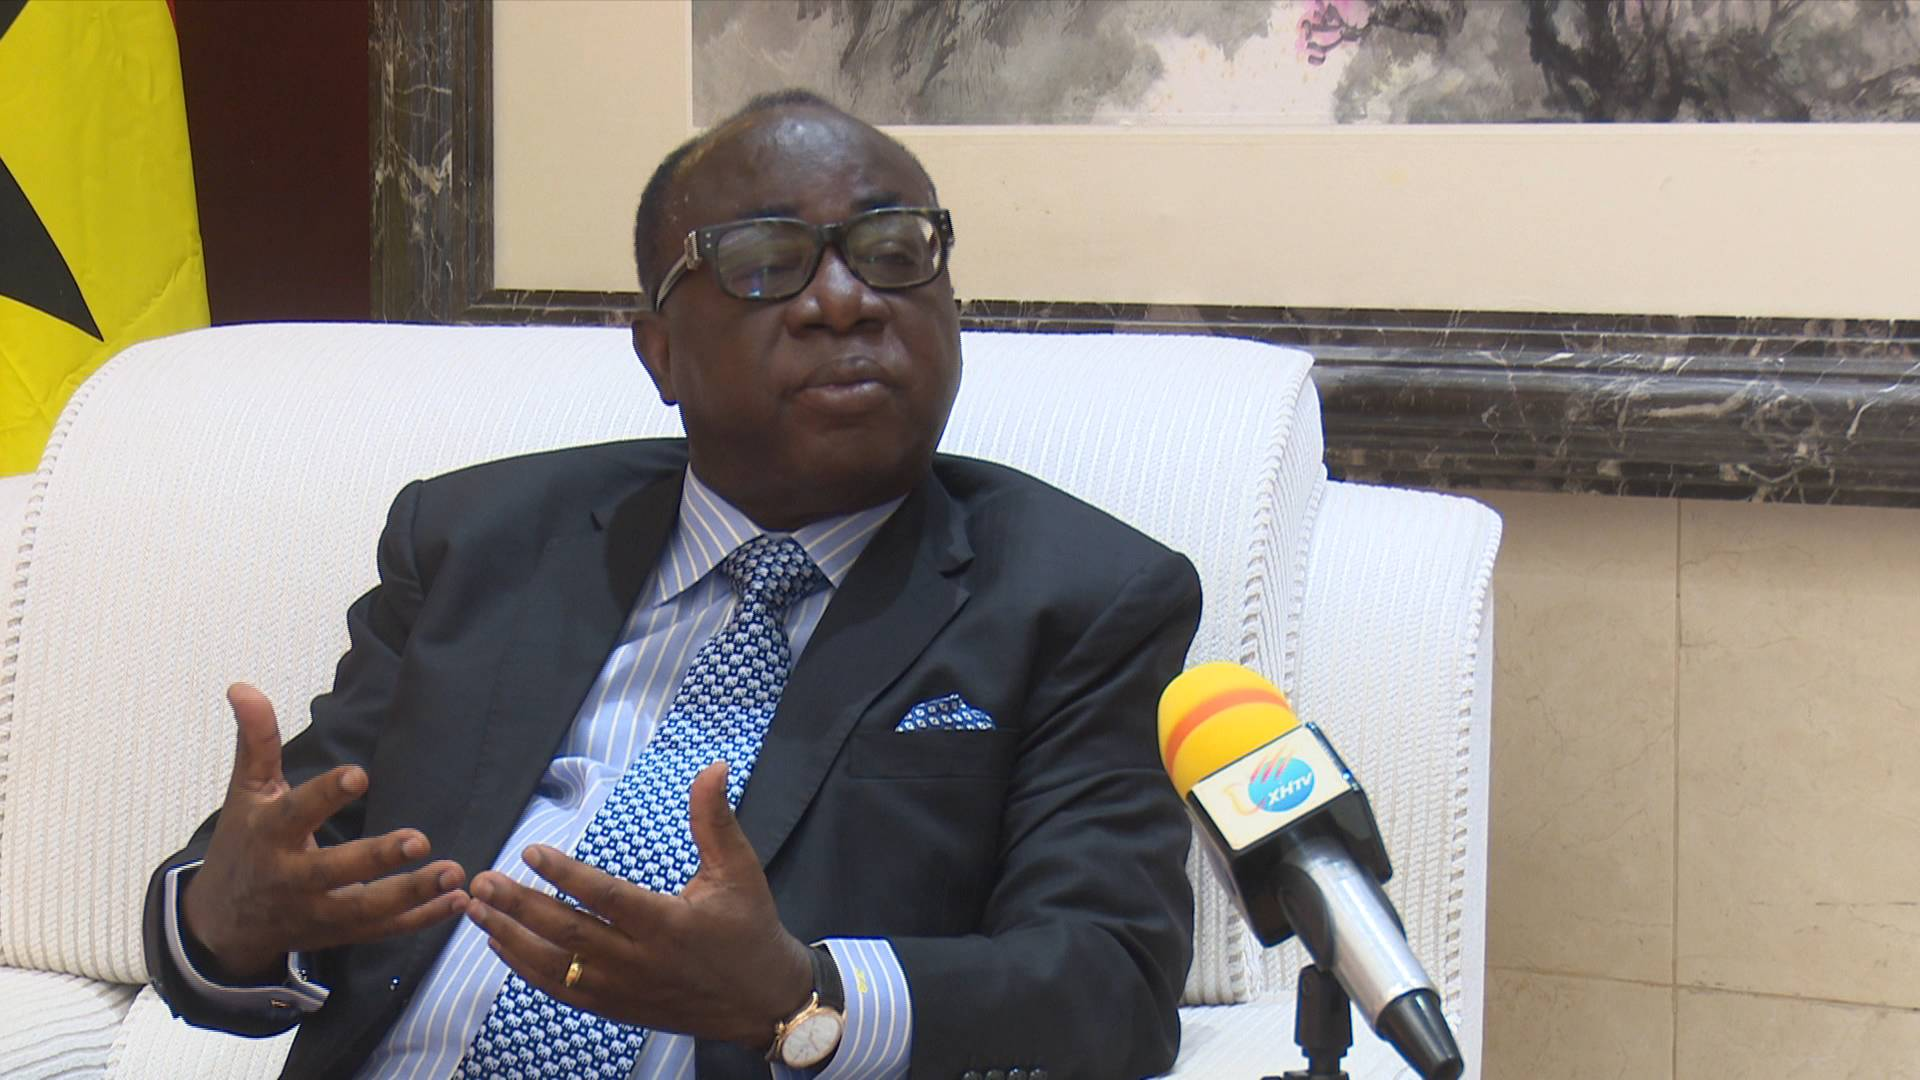 GLOBALink | China shares, so it's beautiful : Ghana's ruling party national chairman